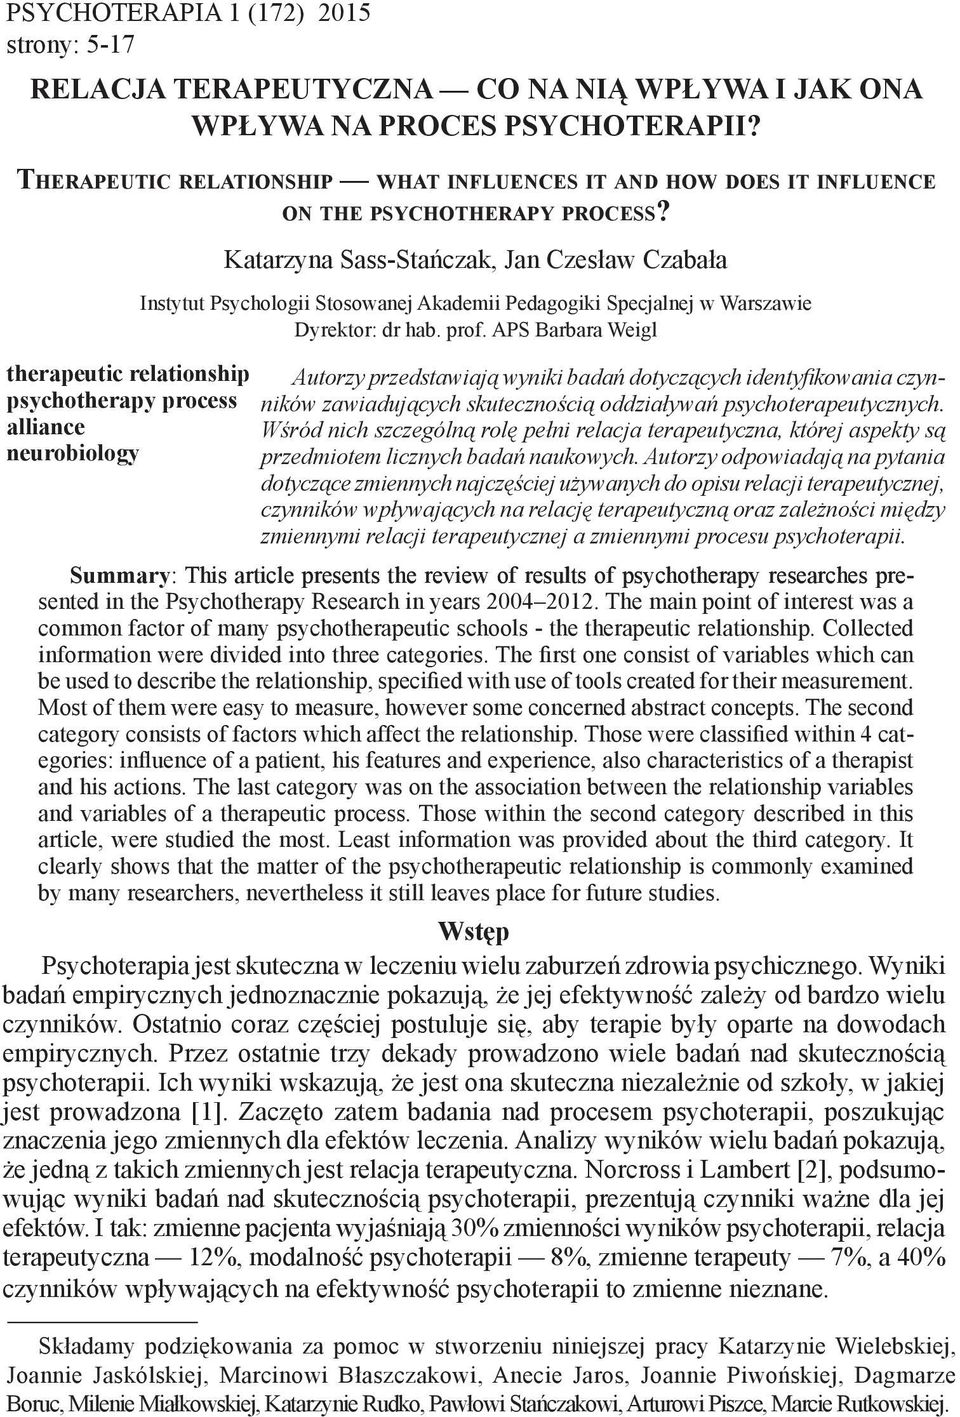 therapeutic relationship psychotherapy process alliance neurobiology Katarzyna Sass-Stańczak, Jan Czesław Czabała Instytut Psychologii Stosowanej Akademii Pedagogiki Specjalnej w Warszawie Dyrektor: